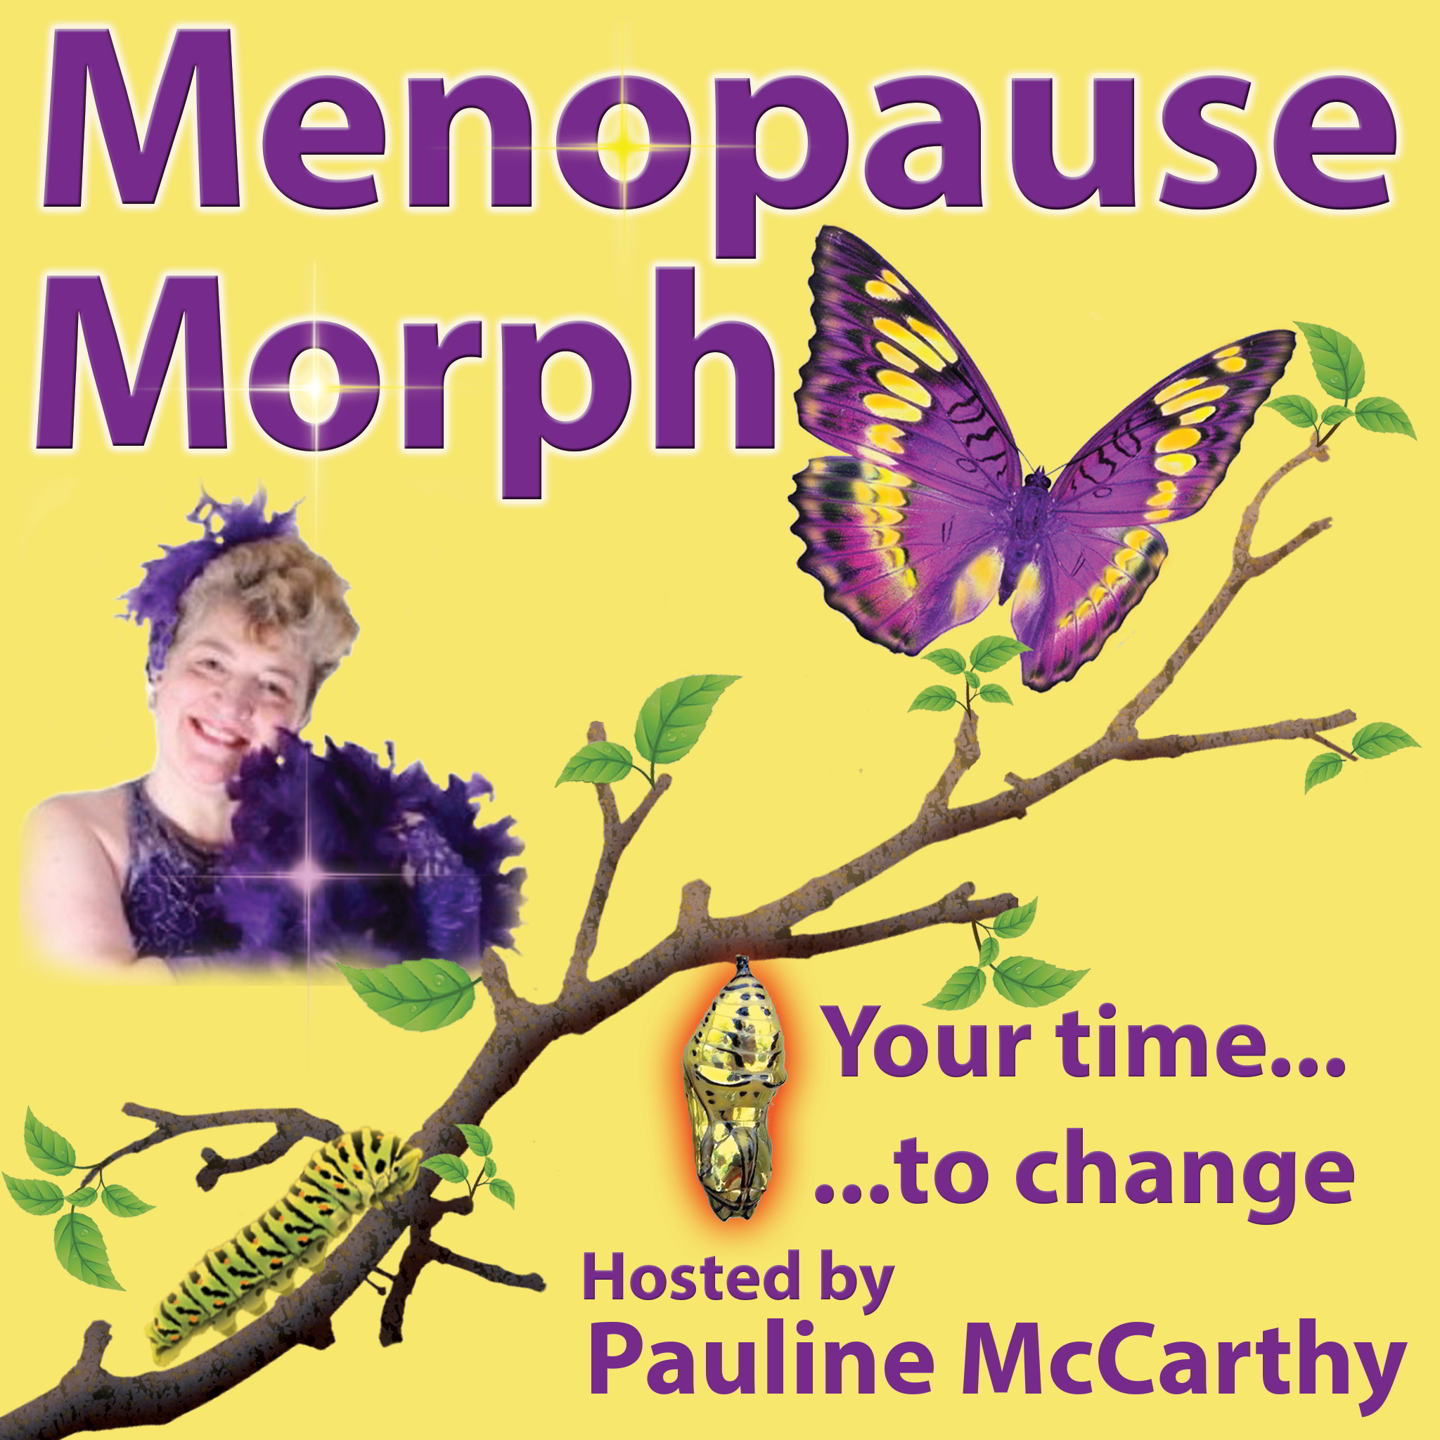 0039 Menopause relief with Acupuncture & Chinese Medicine, Part 1 – Dana Lavoie